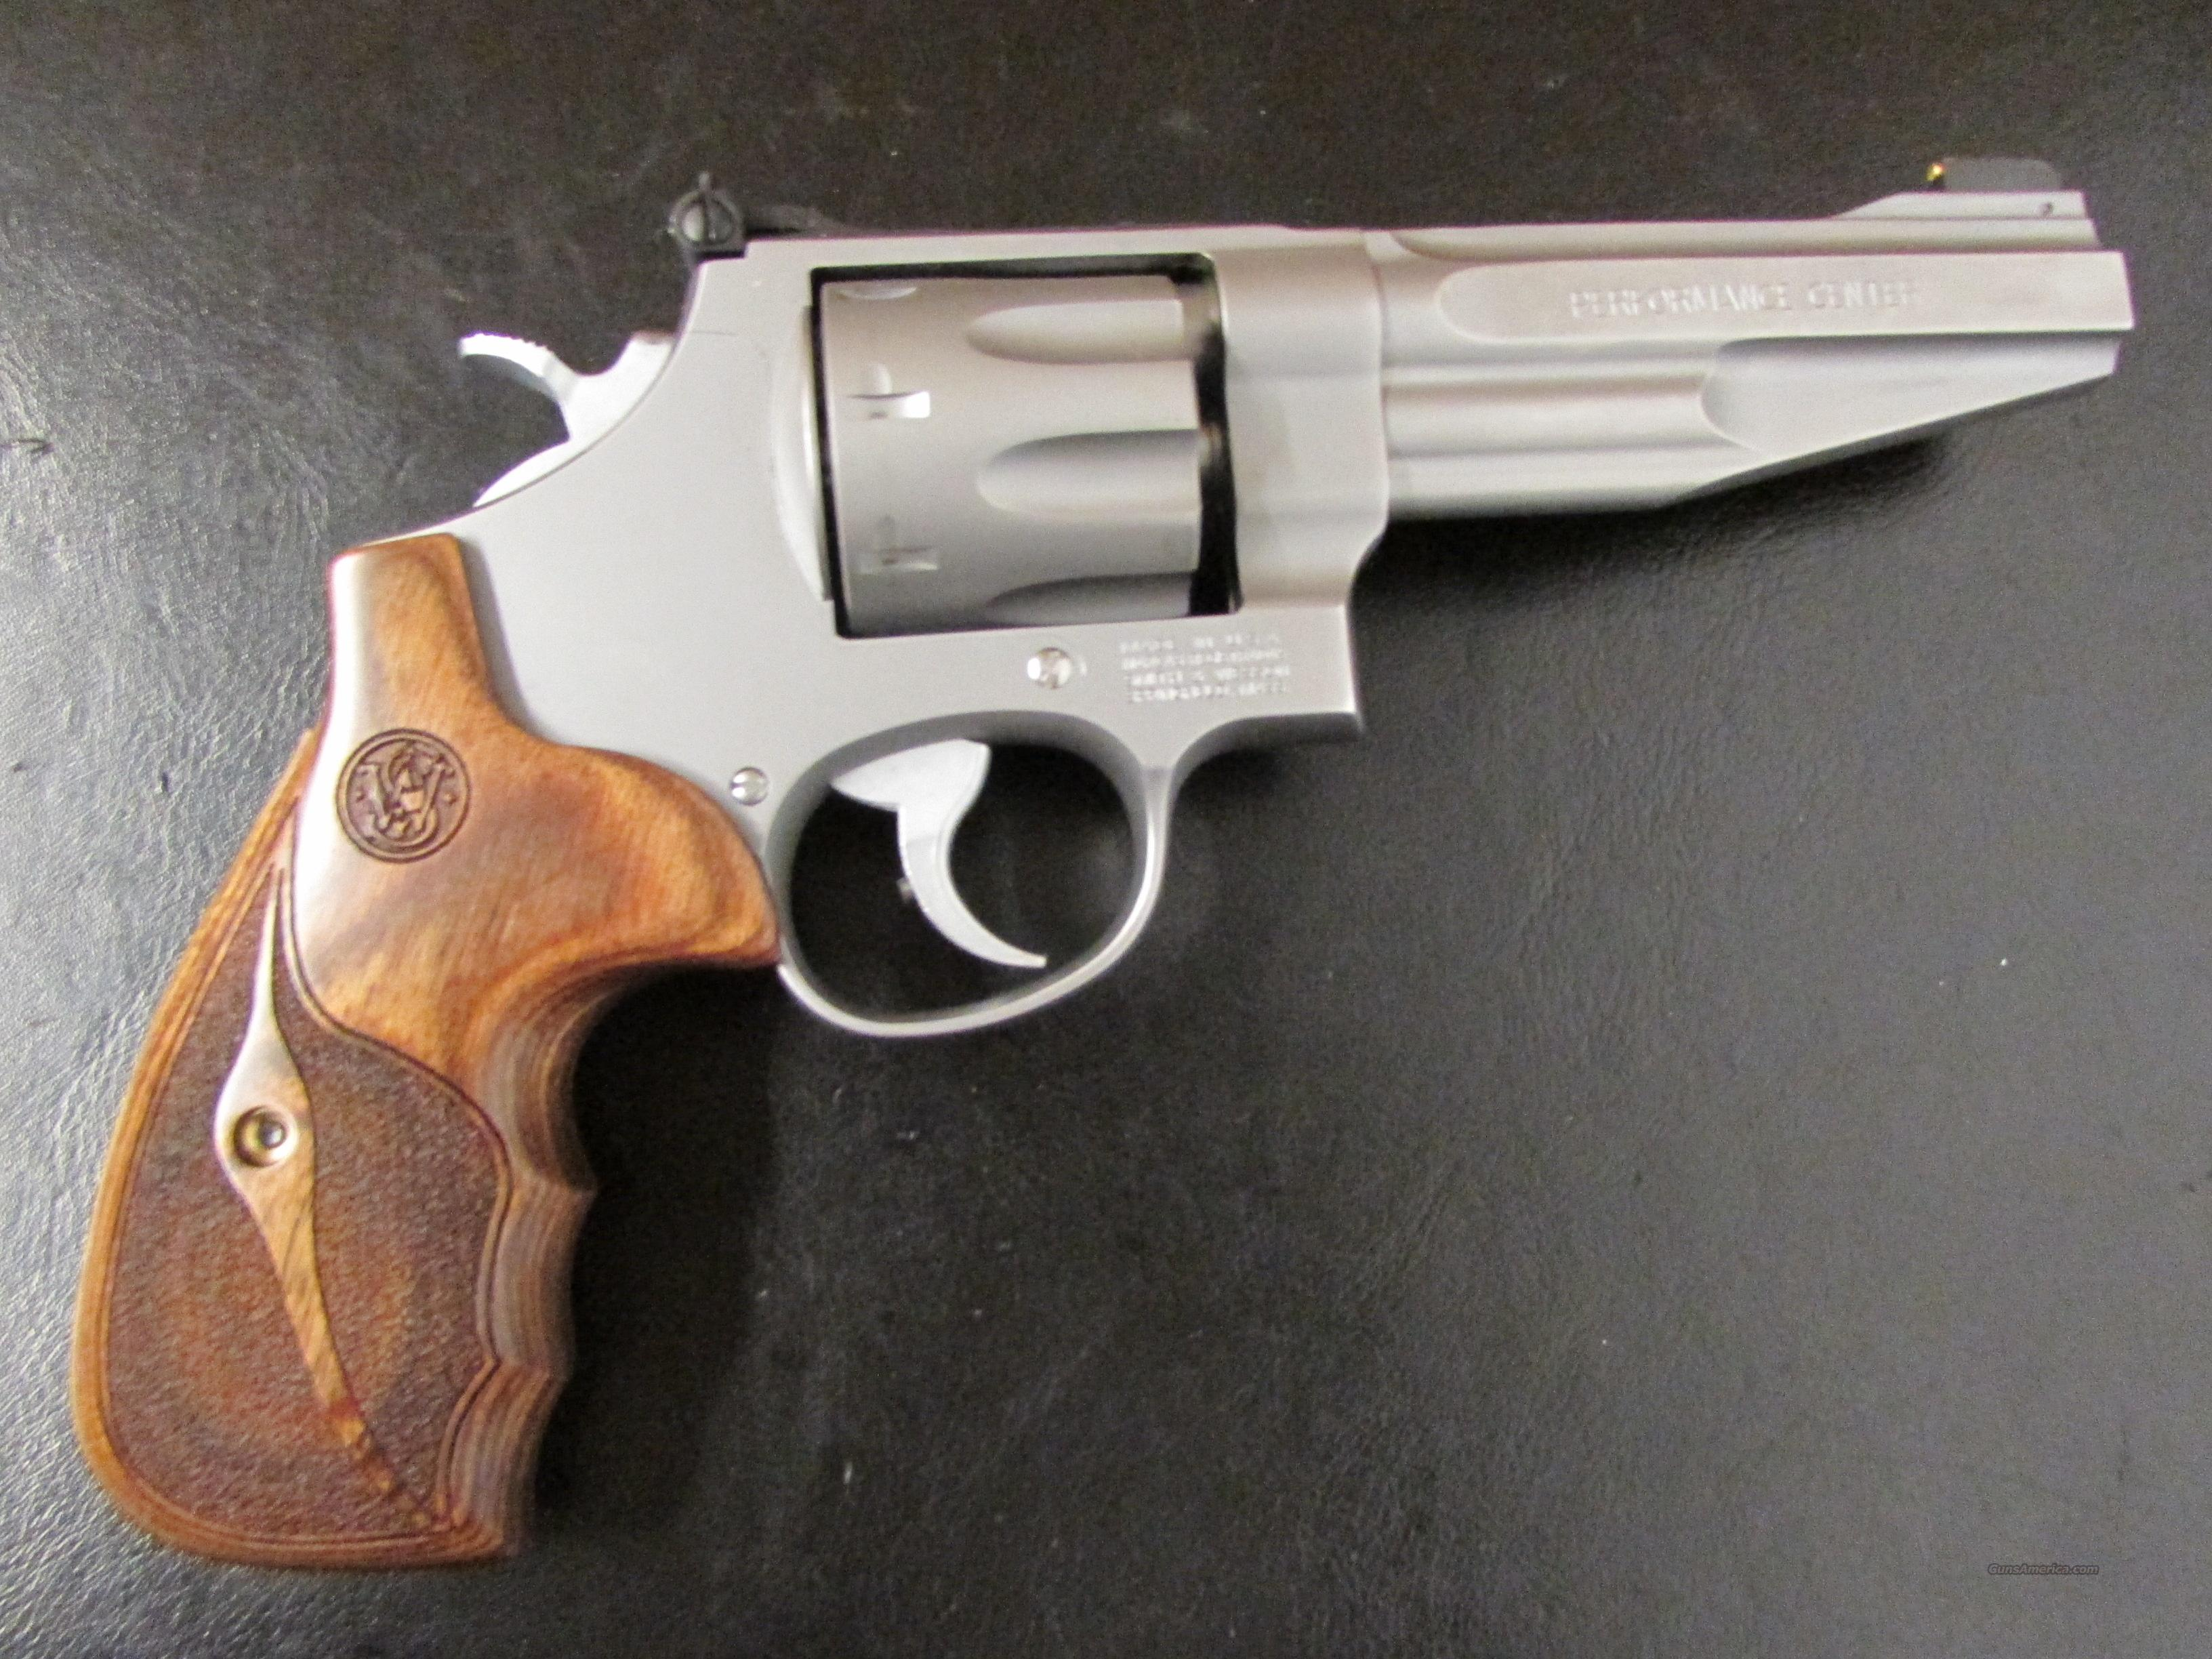 Smith & Wesson Performance Center Model 627 8-Shot .357 Magnum  Guns > Pistols > Smith & Wesson Revolvers > Performance Center